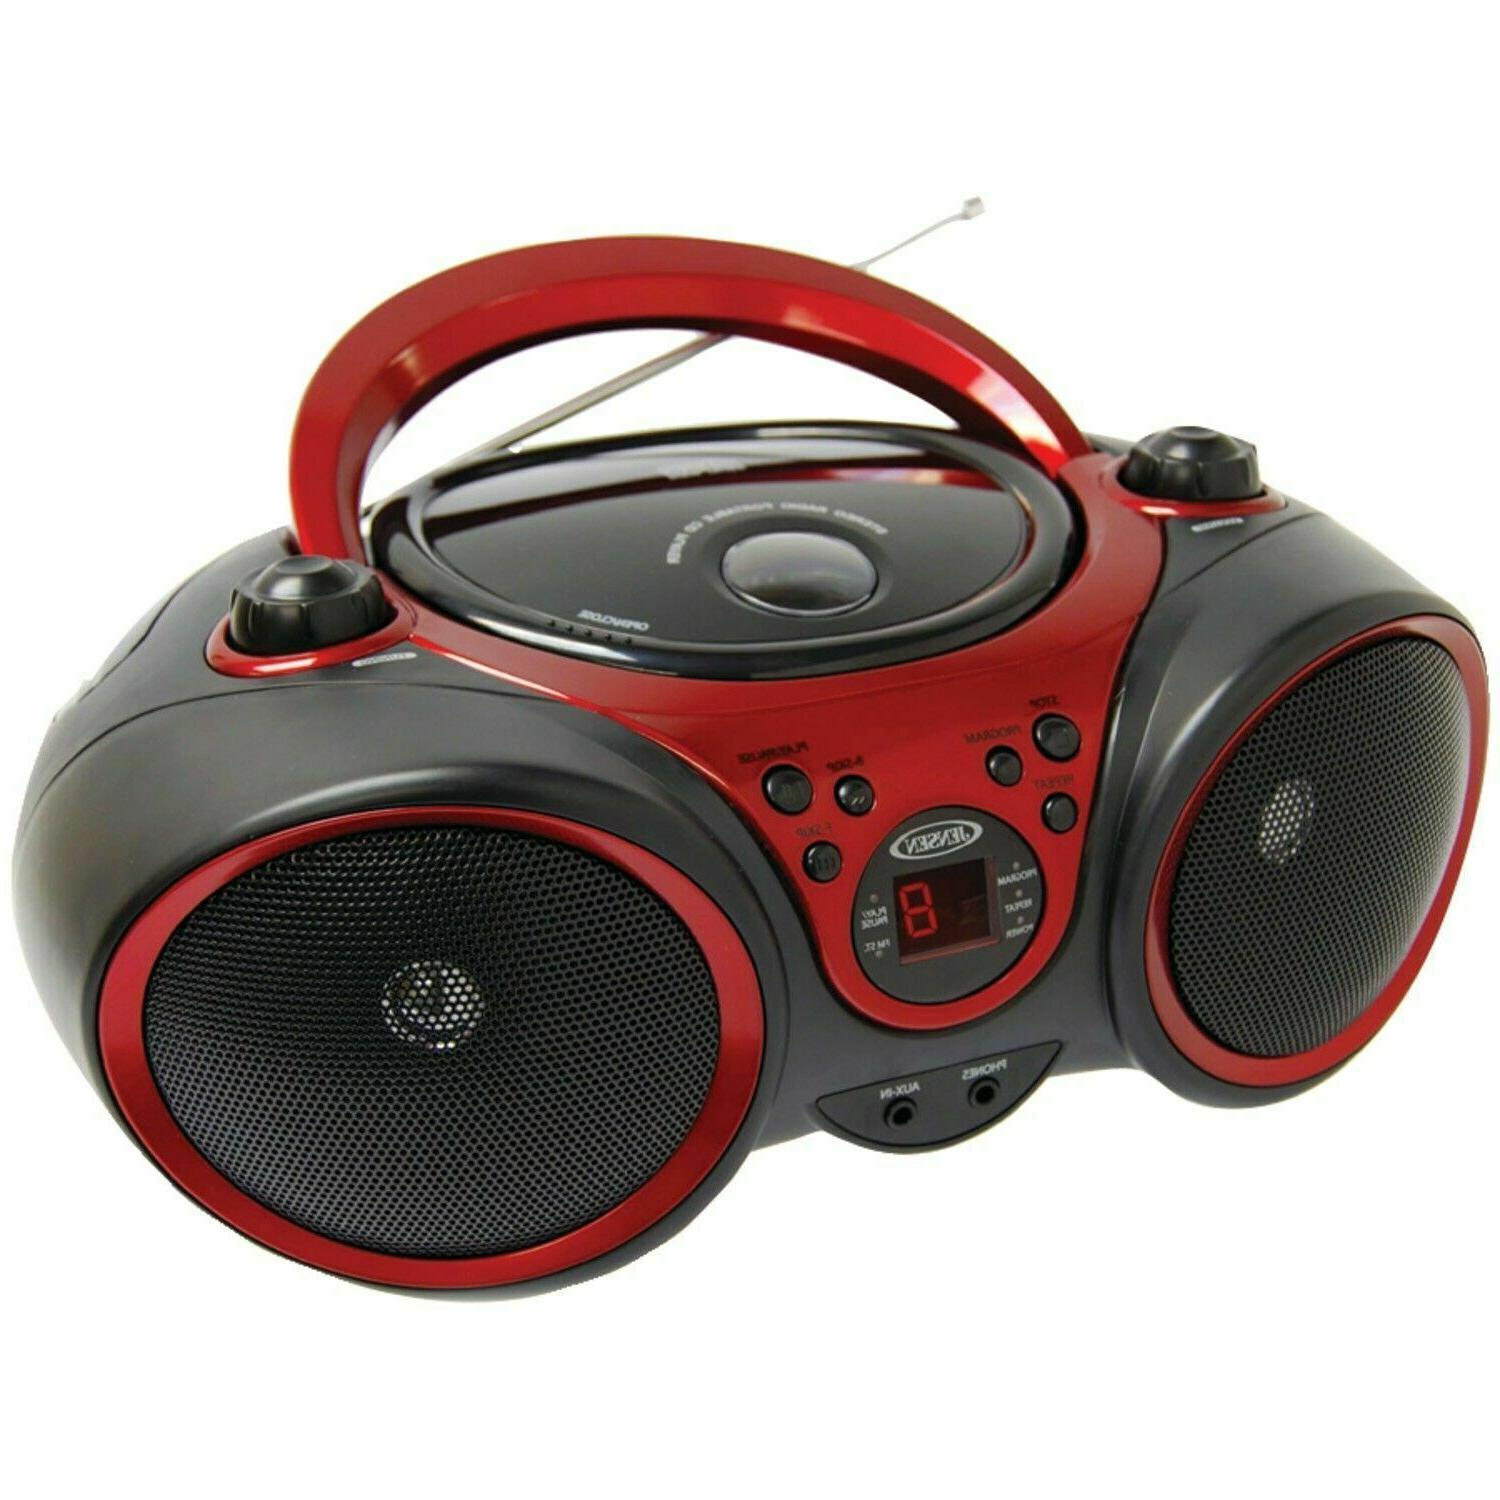 top loading portable stereo cd player